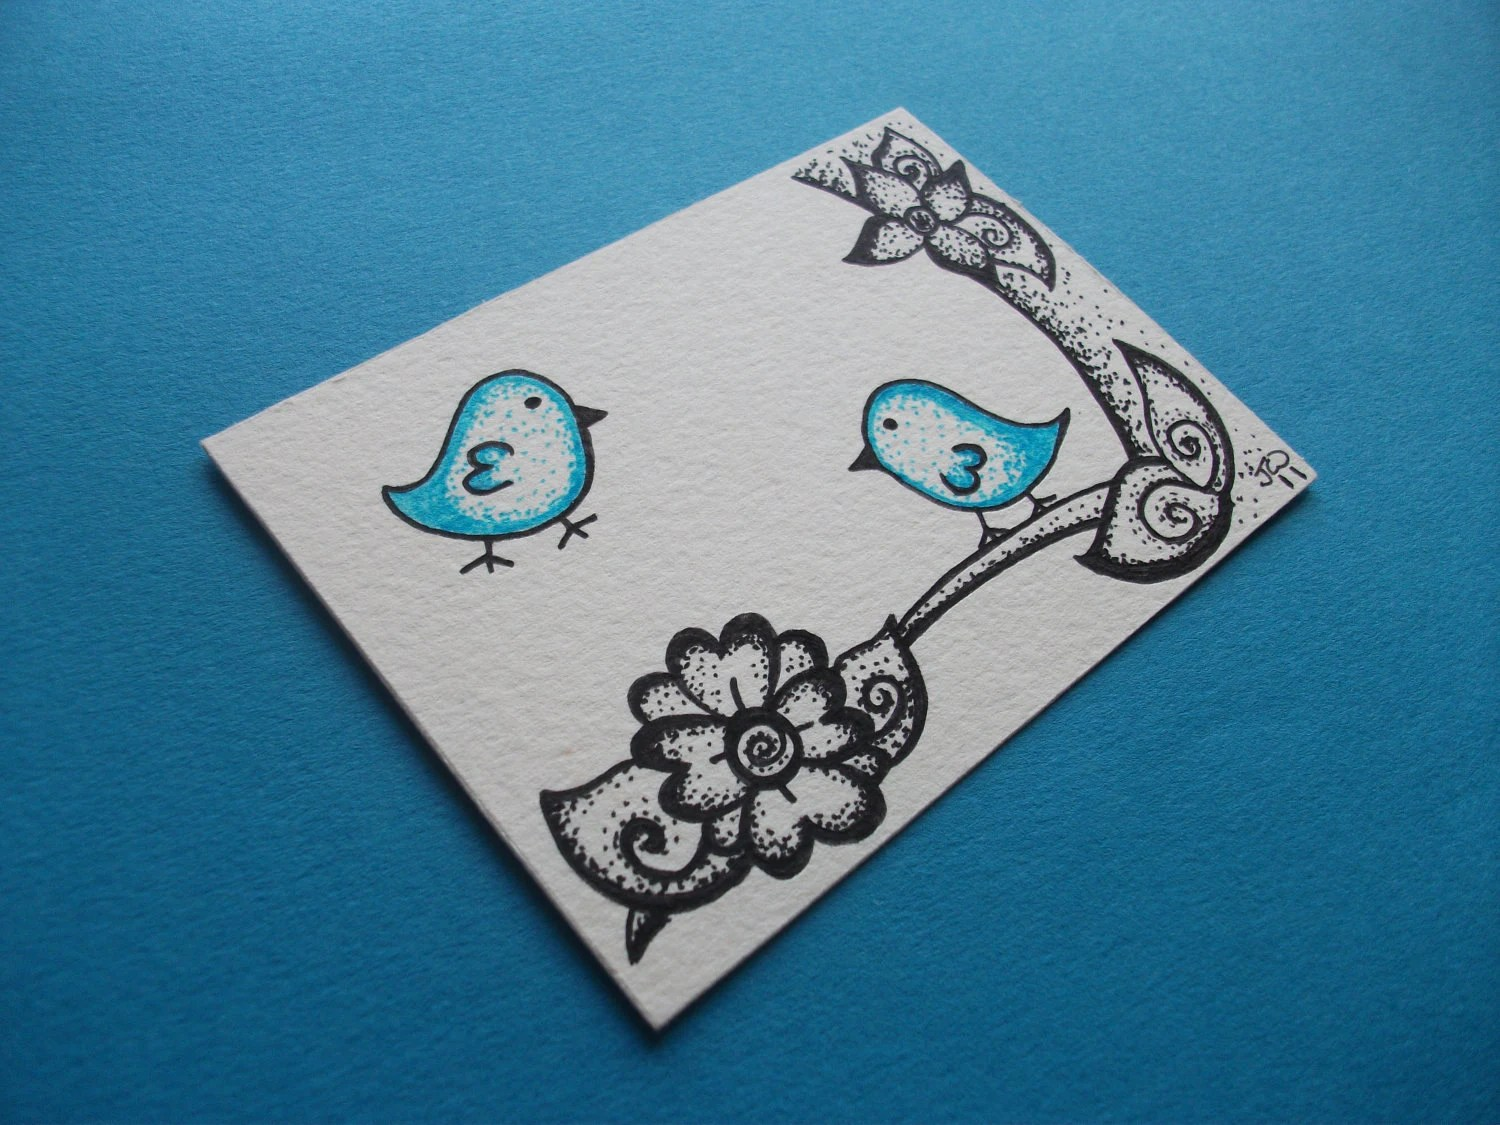 Blue Dotty Birds, ACEO Original Ink Drawing